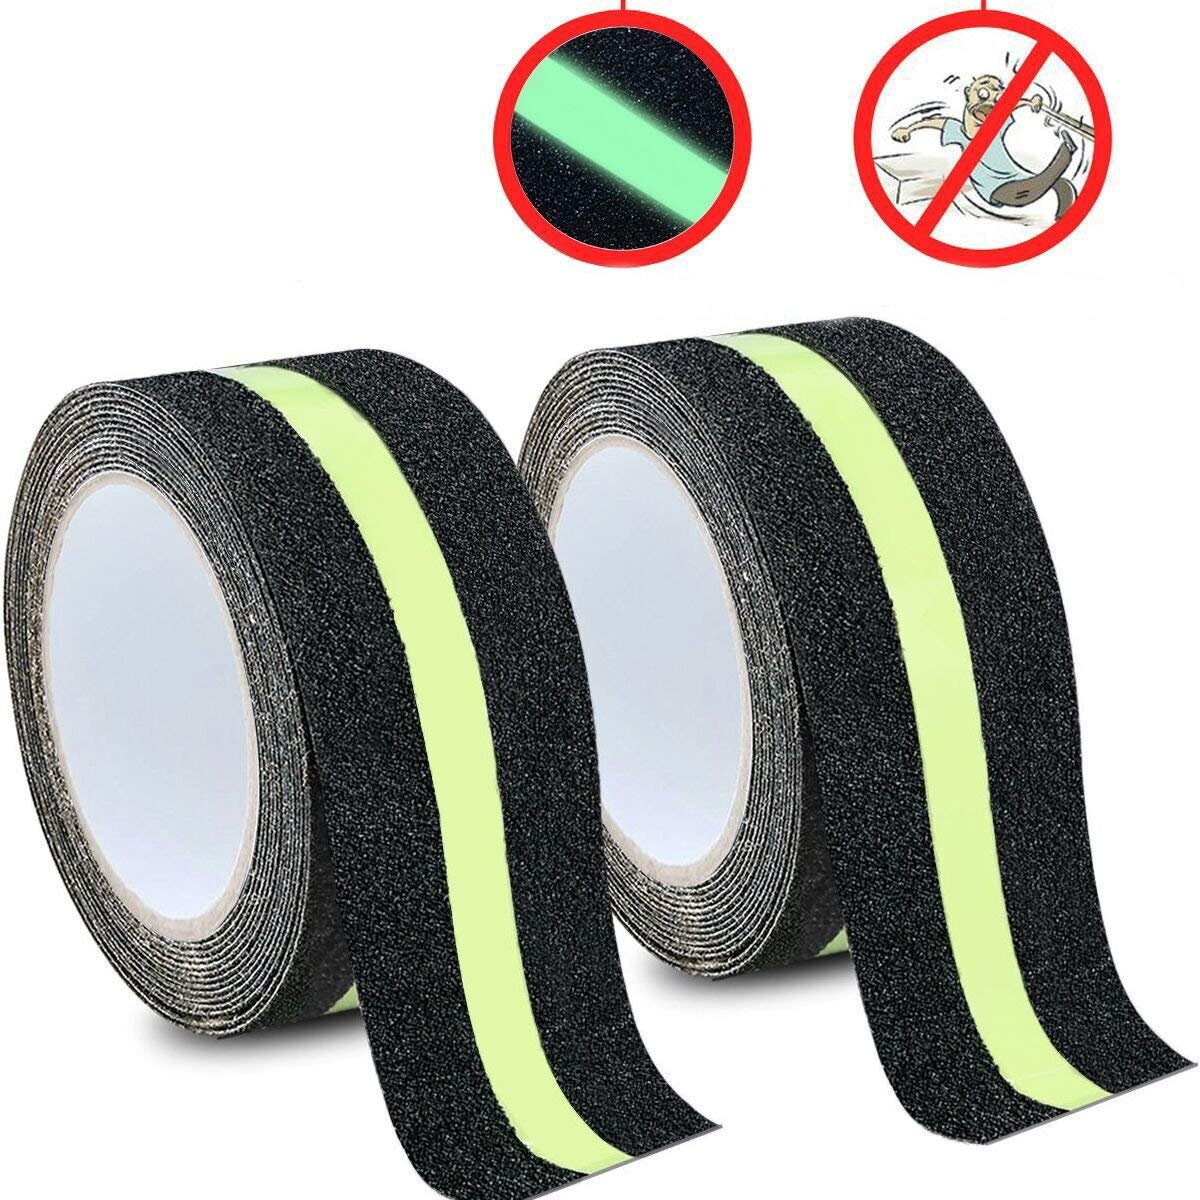 DeaLikee Anti Slip Traction Tape, None Skid Glow in The Dark Walk Strip Safety Tape with 3M Best Grip Abrasive Adhesive for Stairs, Tread Step, Gaffers.(2 Pack, 2' Wide 16.4' Long Roll Each) 2 Wide 16.4 Long Roll Each)